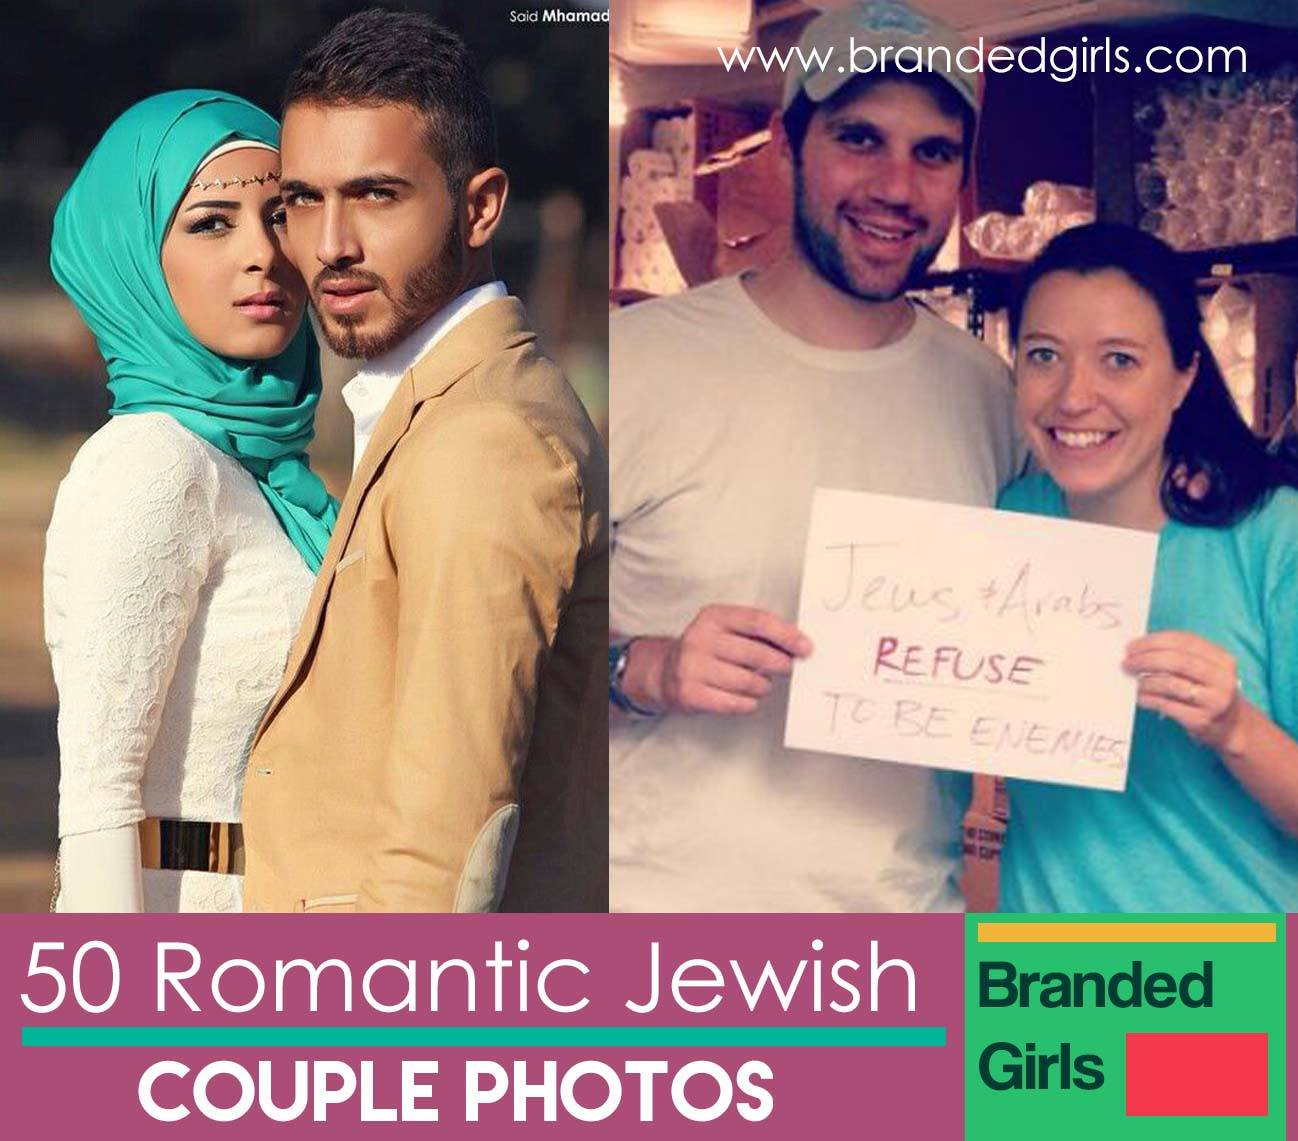 polyvore-sample-1 50 Romantic Jewish Couples-Wedding and Relationship Photos